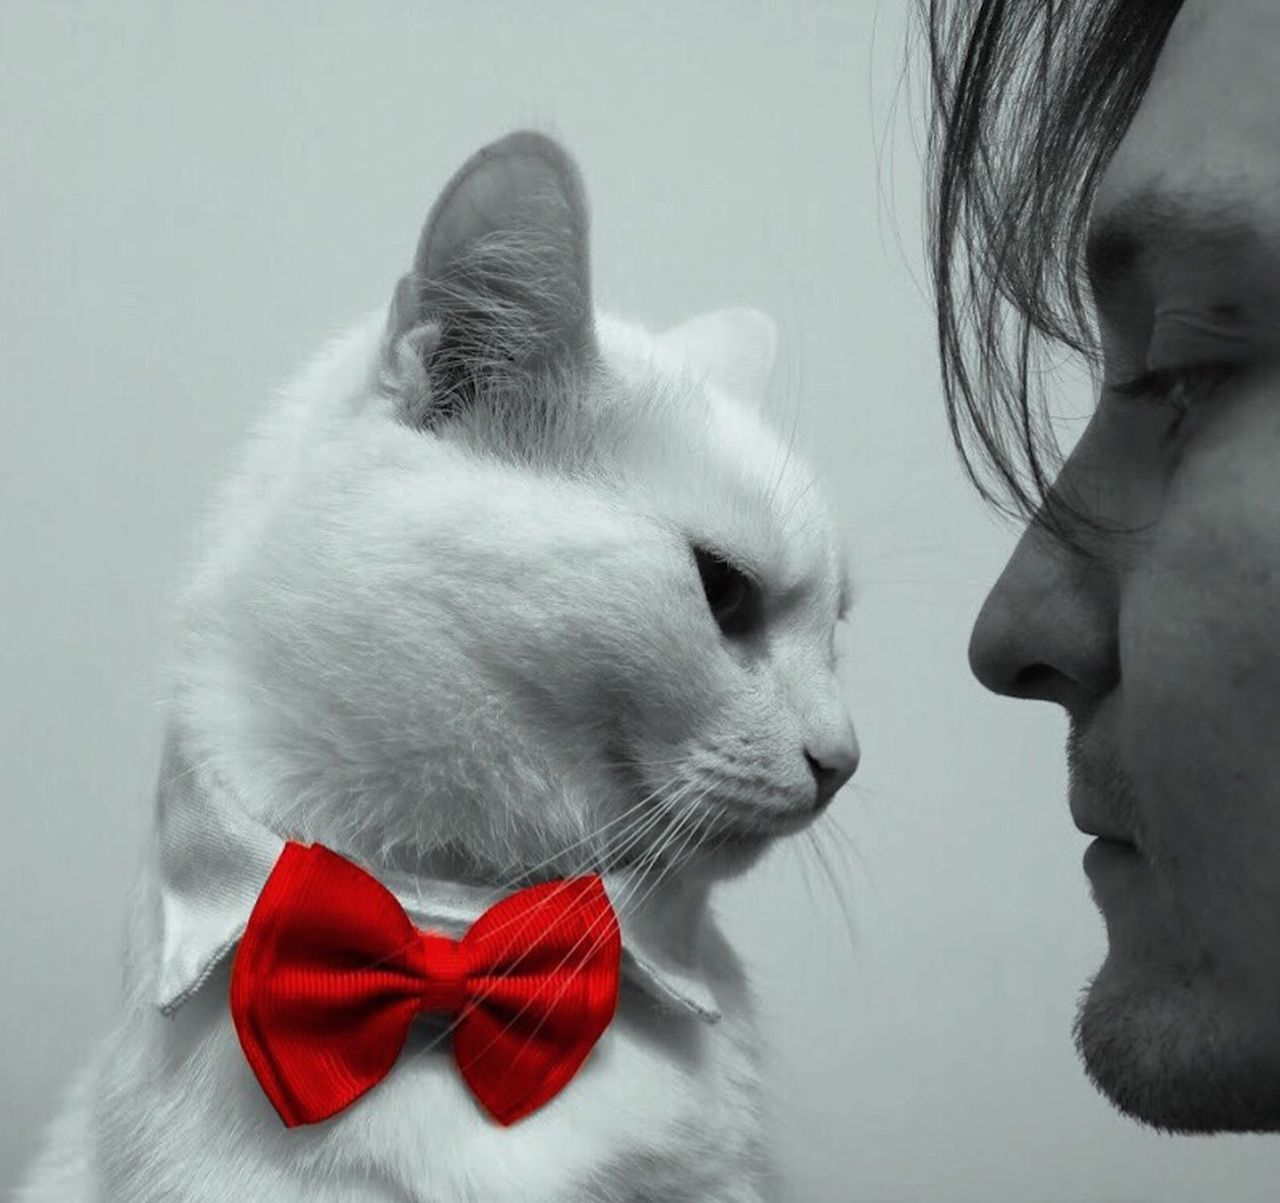 mammal, pets, one animal, domestic, studio shot, indoors, cat, domestic animals, domestic cat, feline, close-up, tied bow, looking, red, bow, vertebrate, gray, people, whisker, profile view